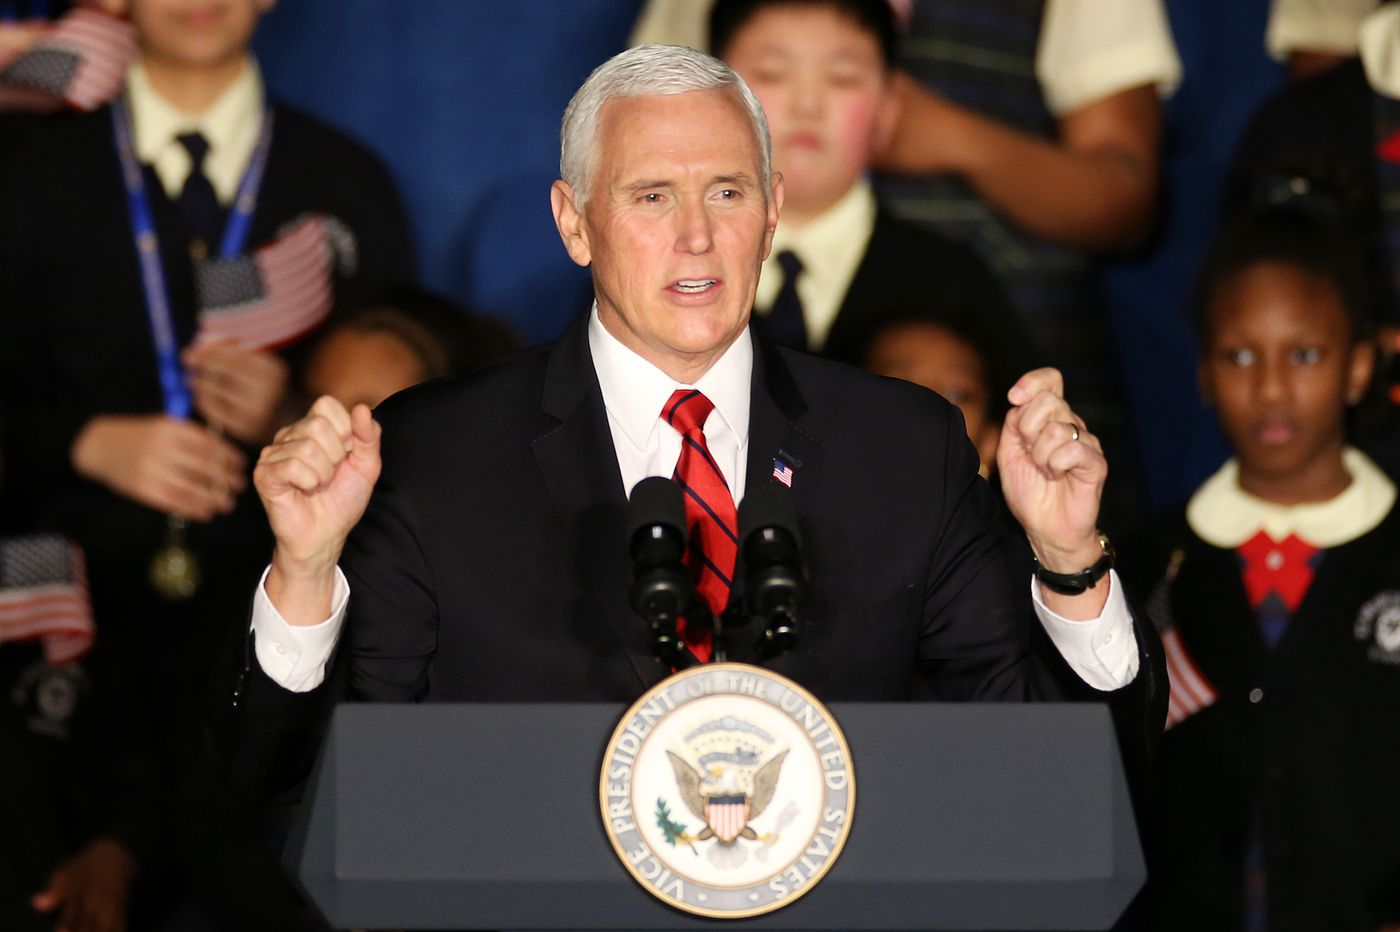 Vice President Mike Pence pushes school choice during visit to Catholic elementary in West Philadelphia